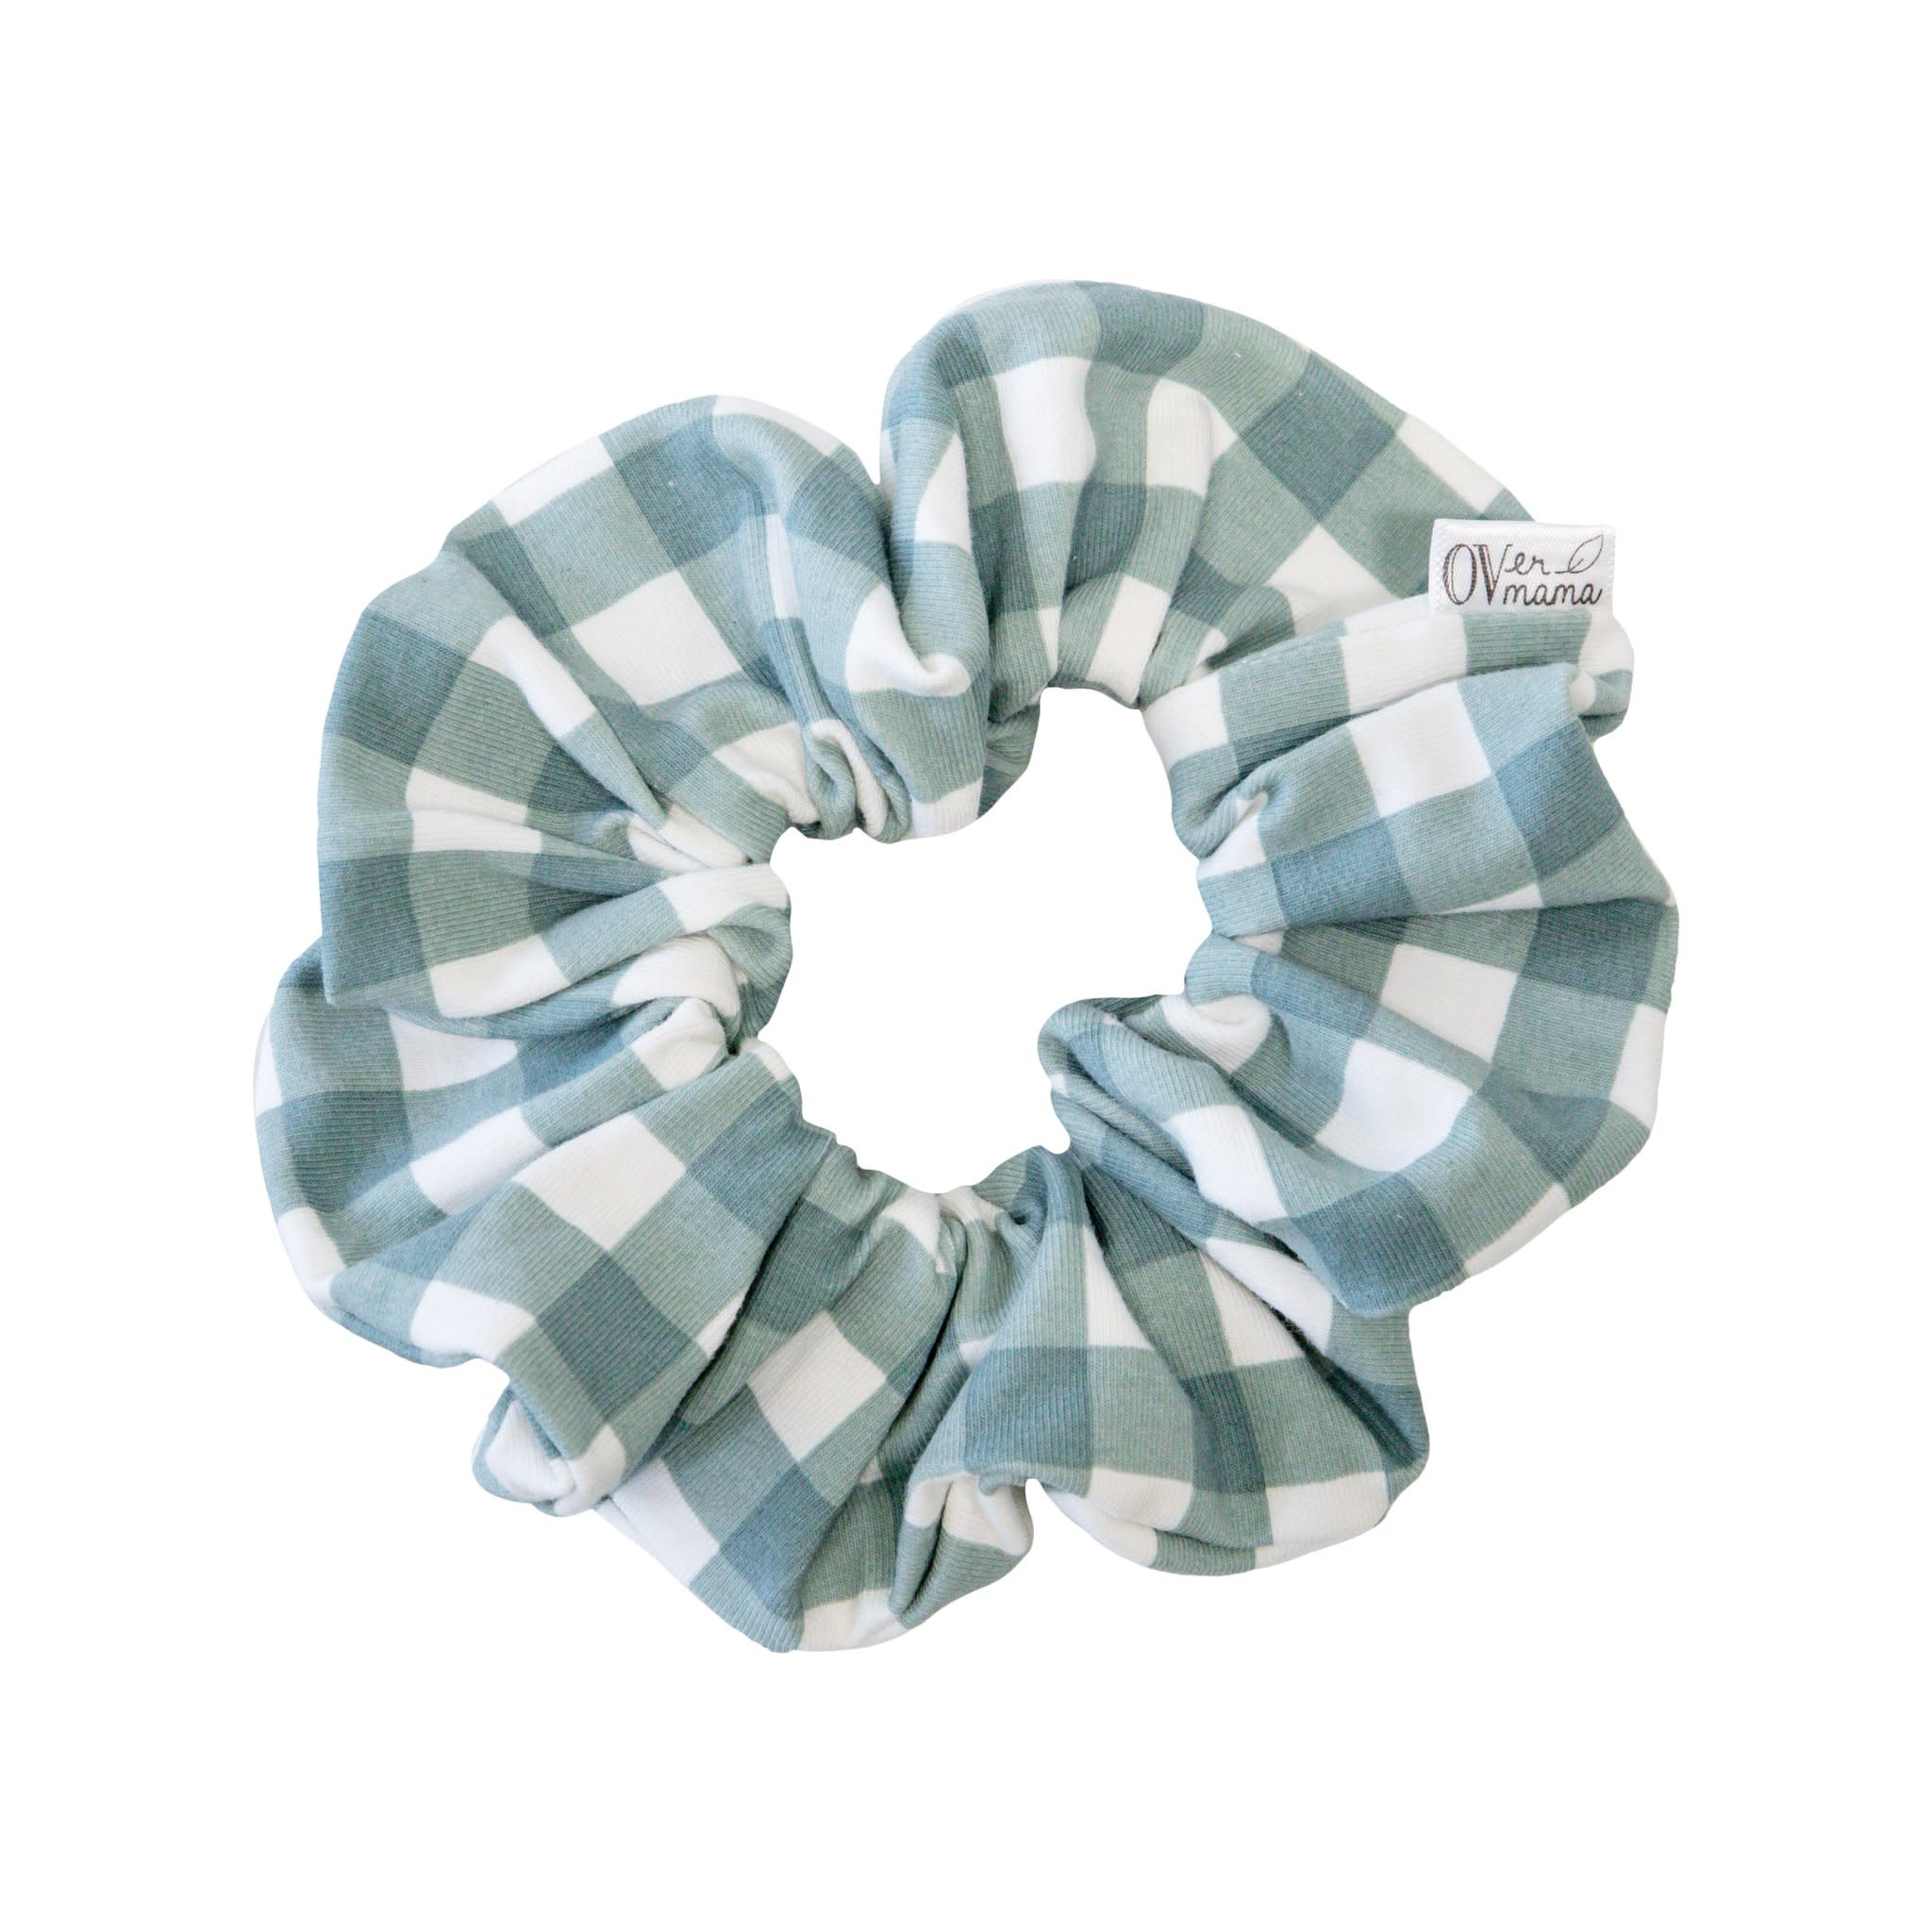 The OVer Co. The OVer Mama Essential Scrunchie